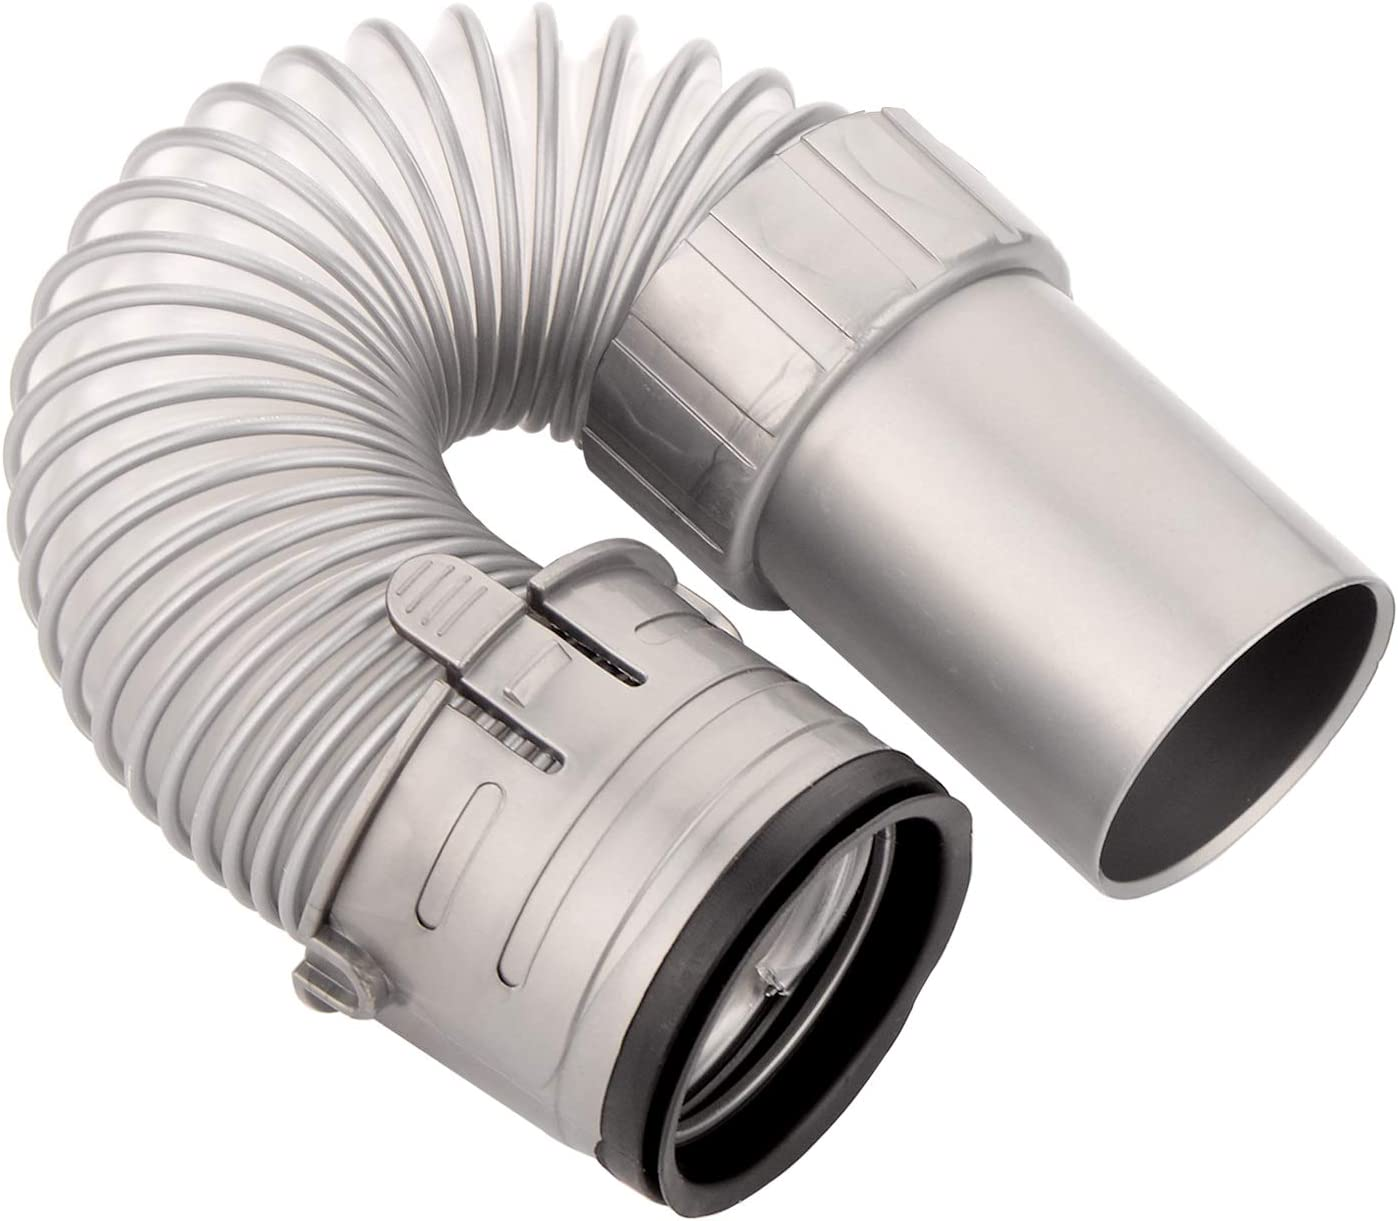 Compare to Part No.193FFJ Nozzle Hose for Shark Floor Nozzle Vacuum Hose Replacement for Shark Navigator Lift-Away Vacuum Cleaner NV350 NV351 NV352 NV356 NV357 UV440